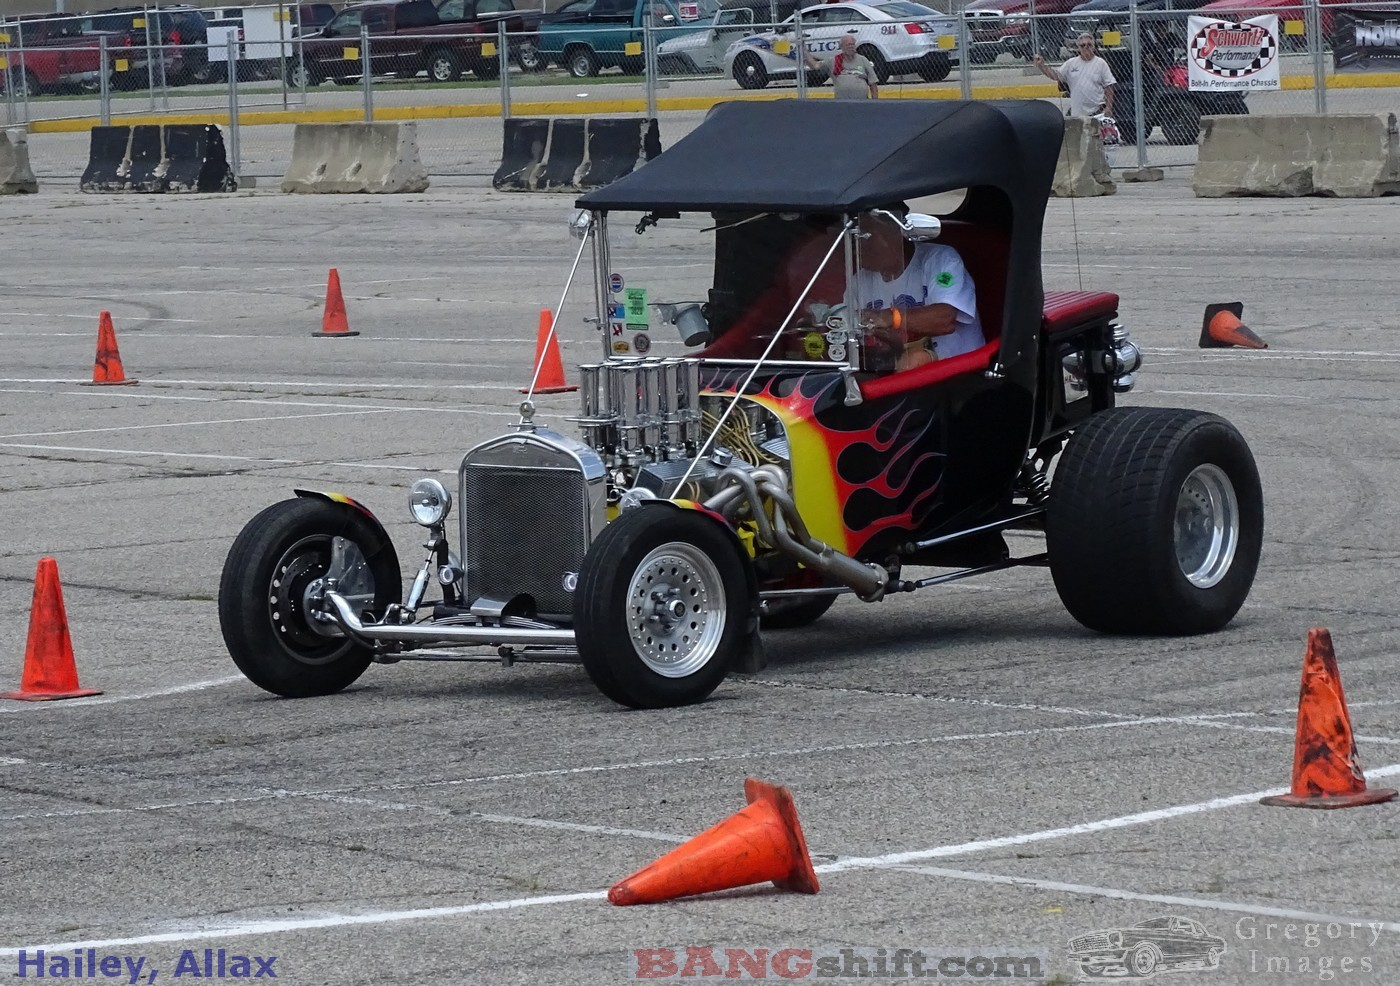 NSRA Streetkhana Action 2: More Cars, More Cones, More Cool Photos